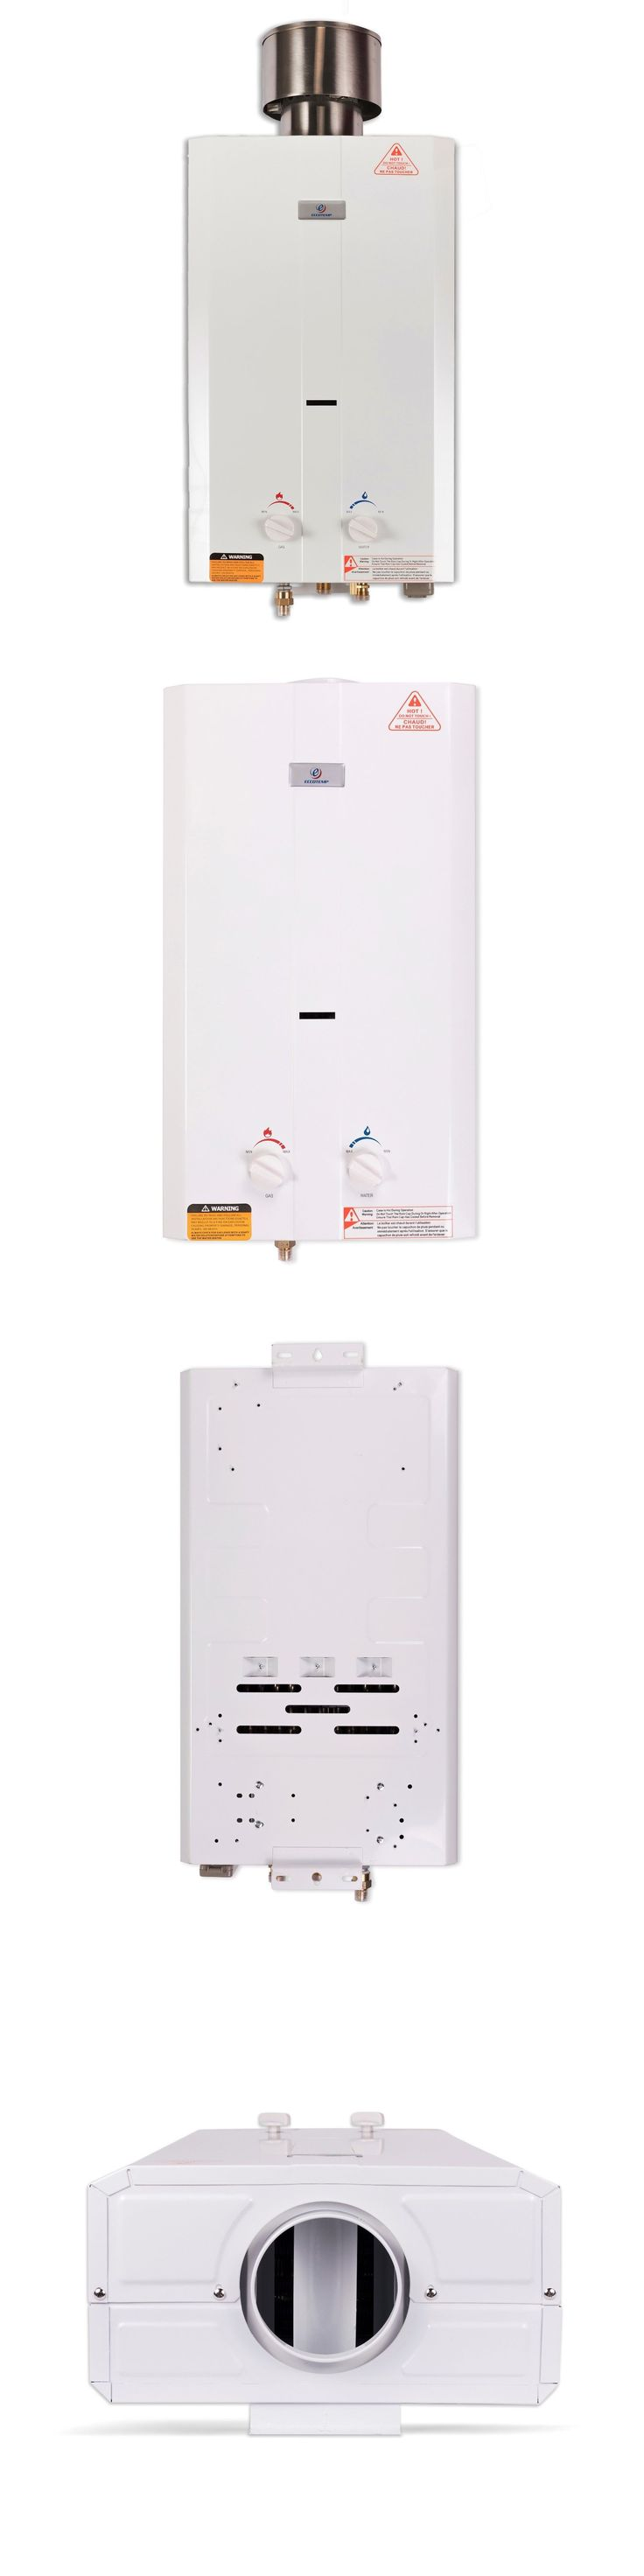 Portable Showers and Accessories 181396: Eccotemp L10 Portable Outdoor Tankless Water Heater Shower -> BUY IT NOW ONLY: $229 on eBay!